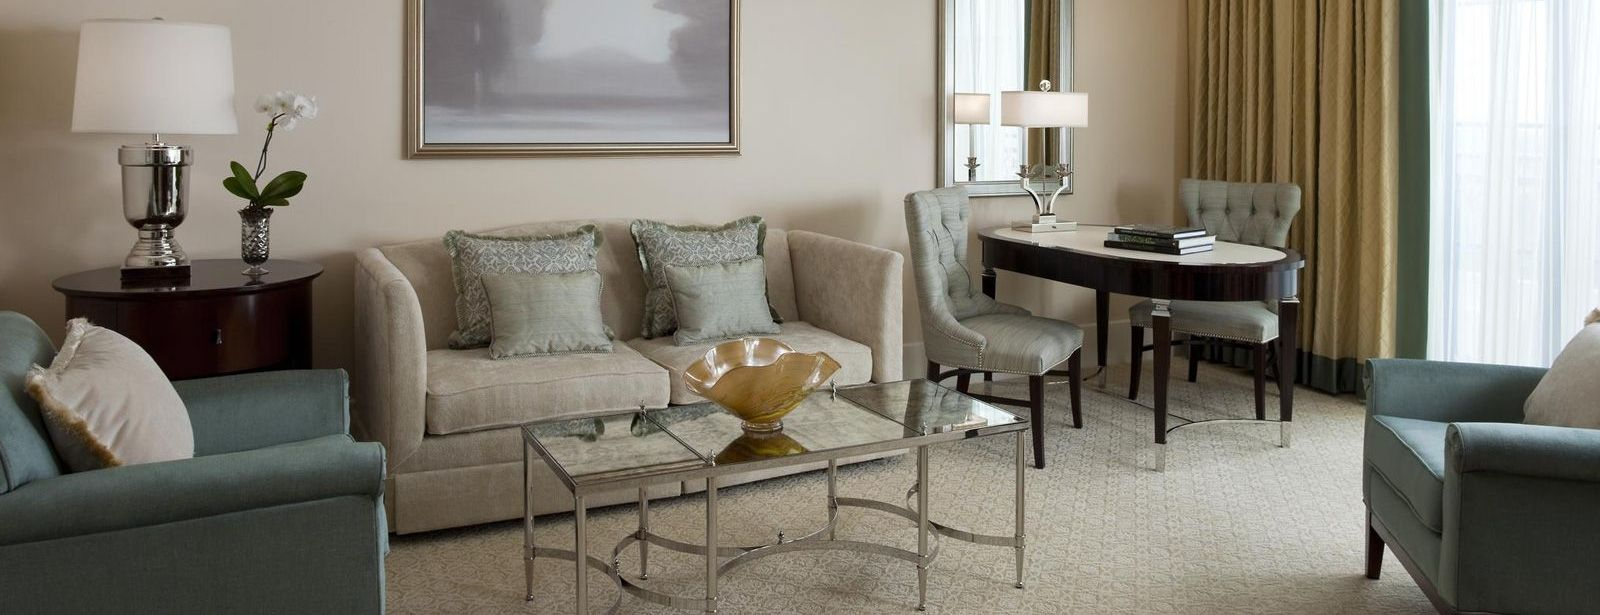 Caroline Astor Suite | The St. Regis Atlanta